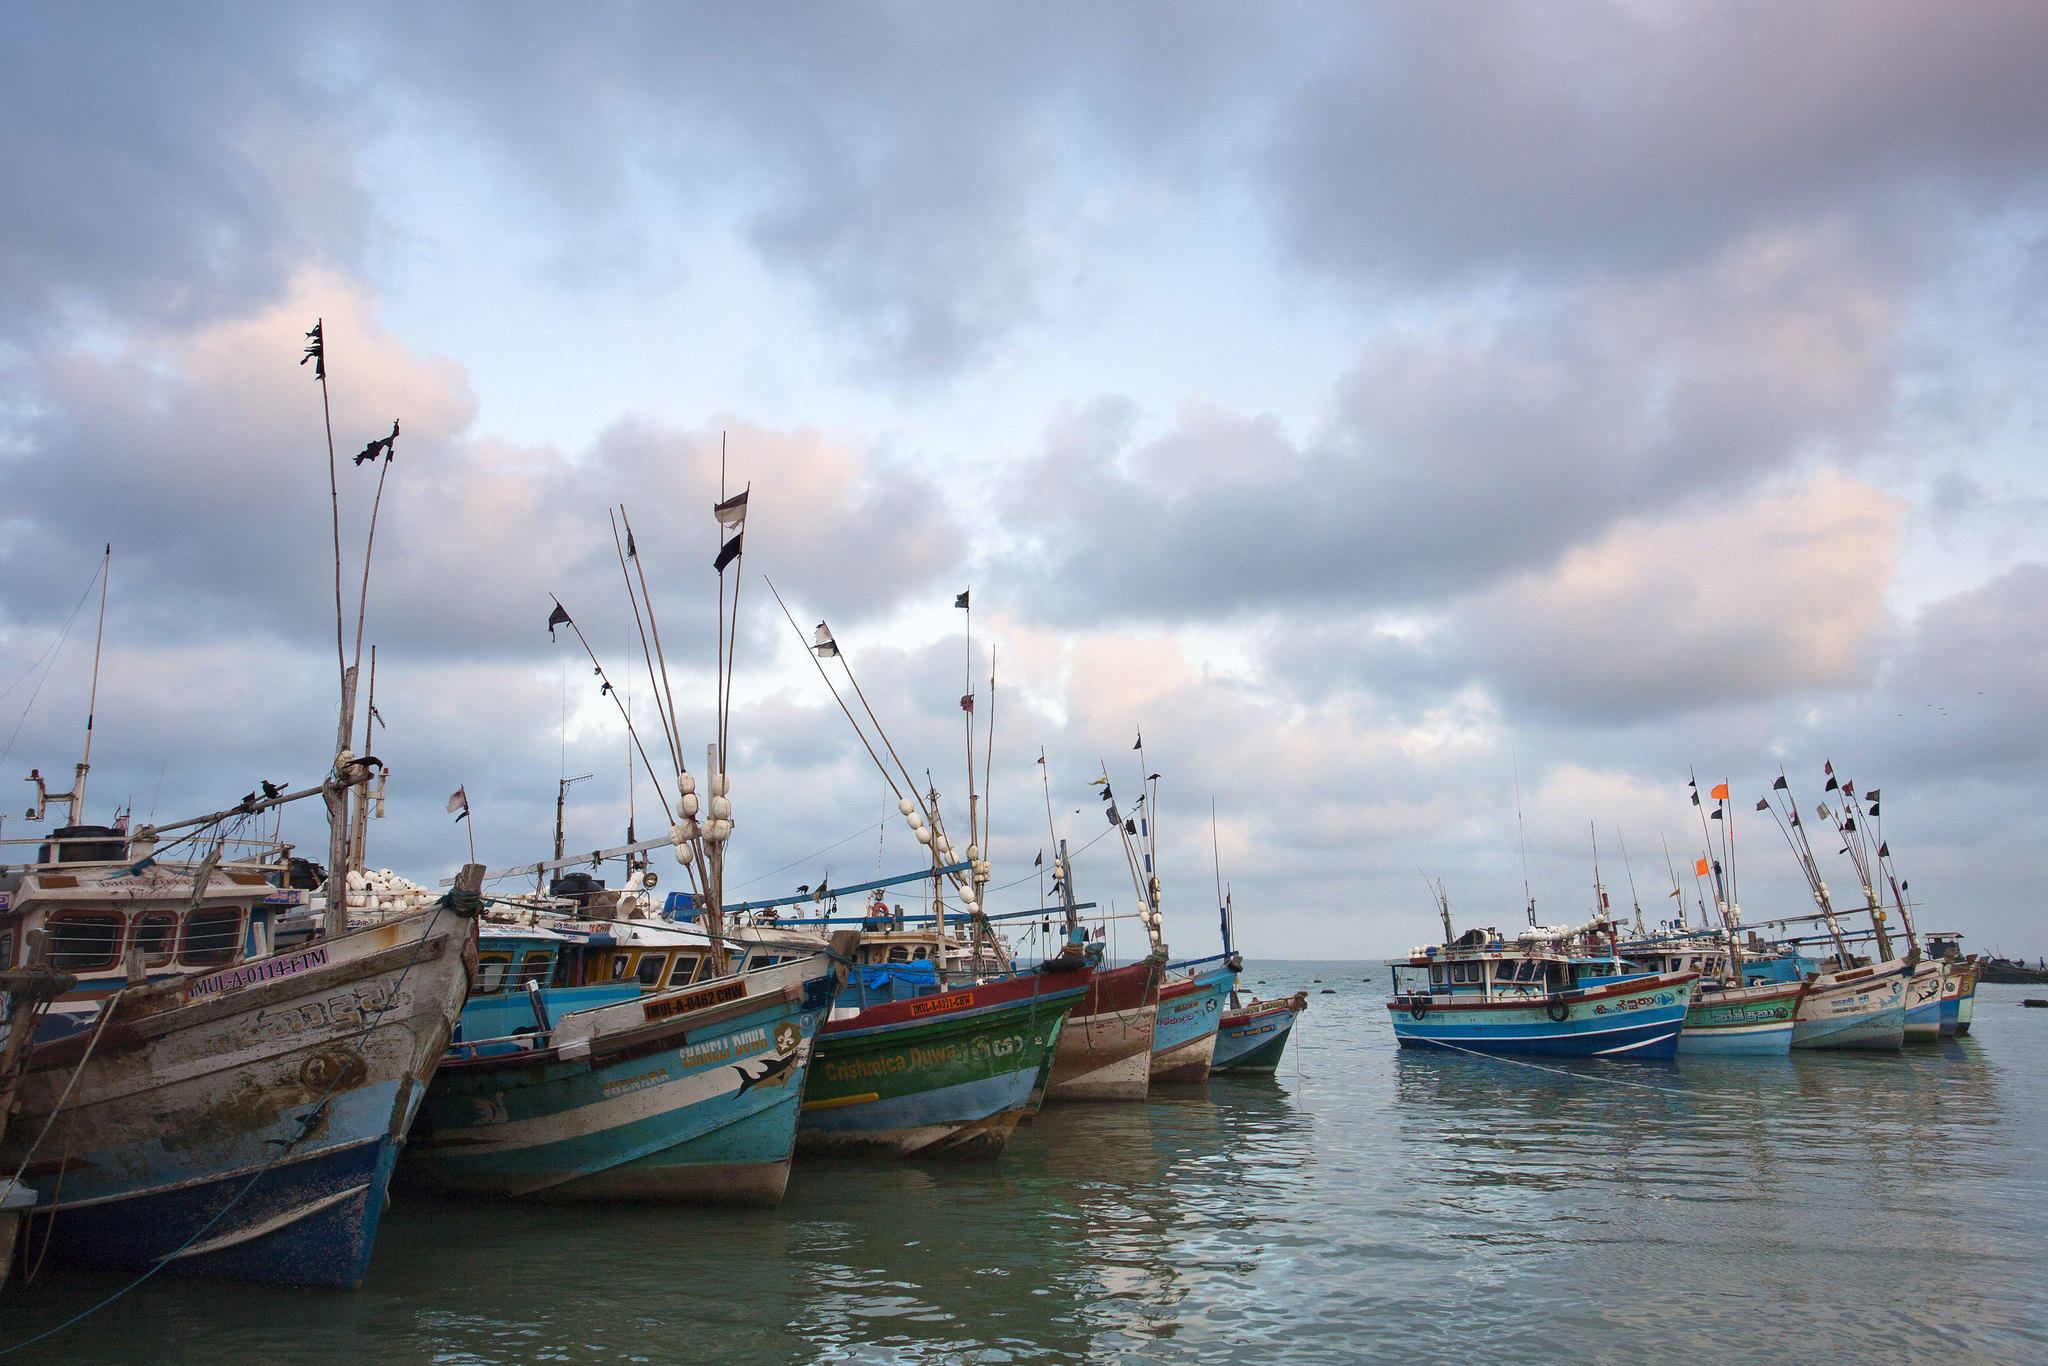 Small fishing boats at dock.